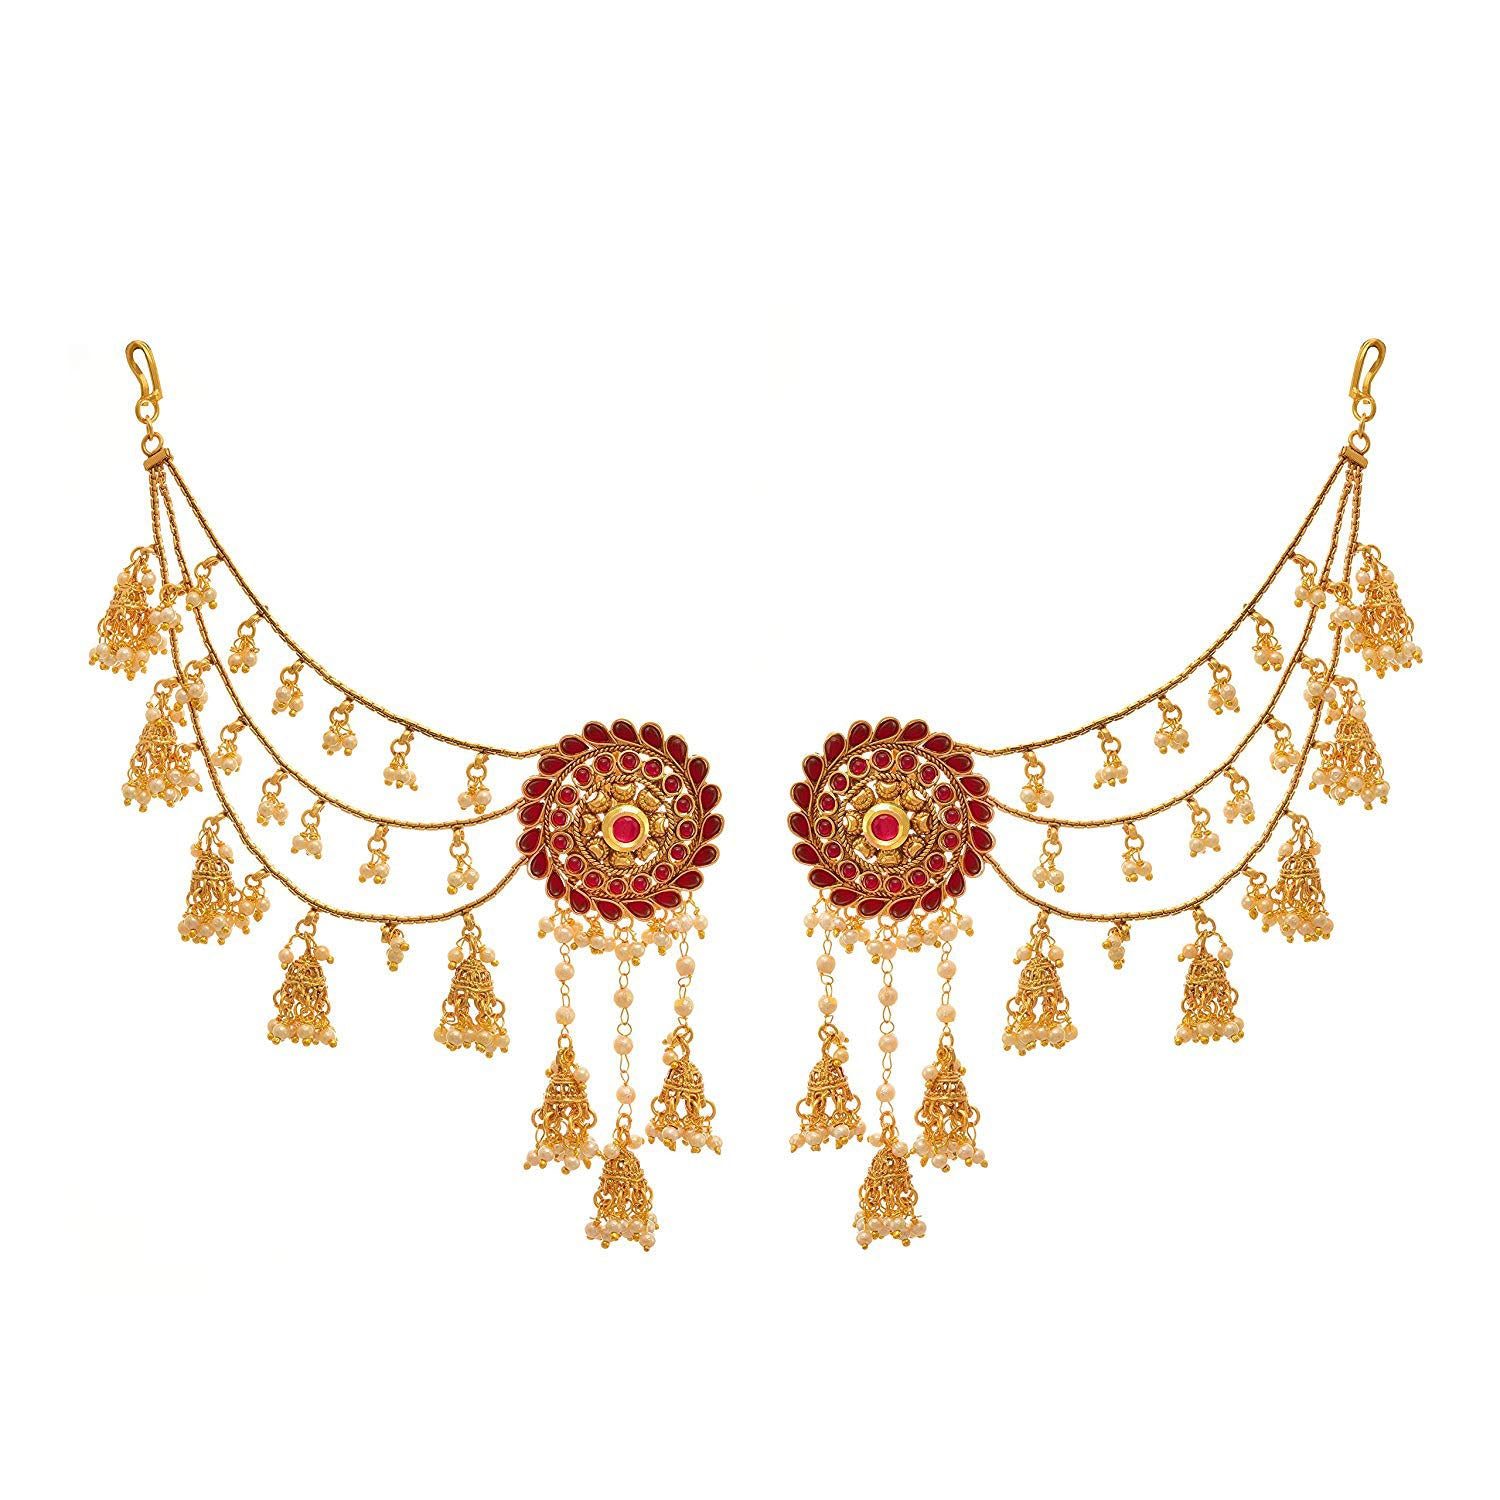 Jewellery for Less Traditional Ethnic 1gm Gold Plated Pink Stone & Pearl Bahubali Jhumki/Jhumka Earrings for Girls and Women.